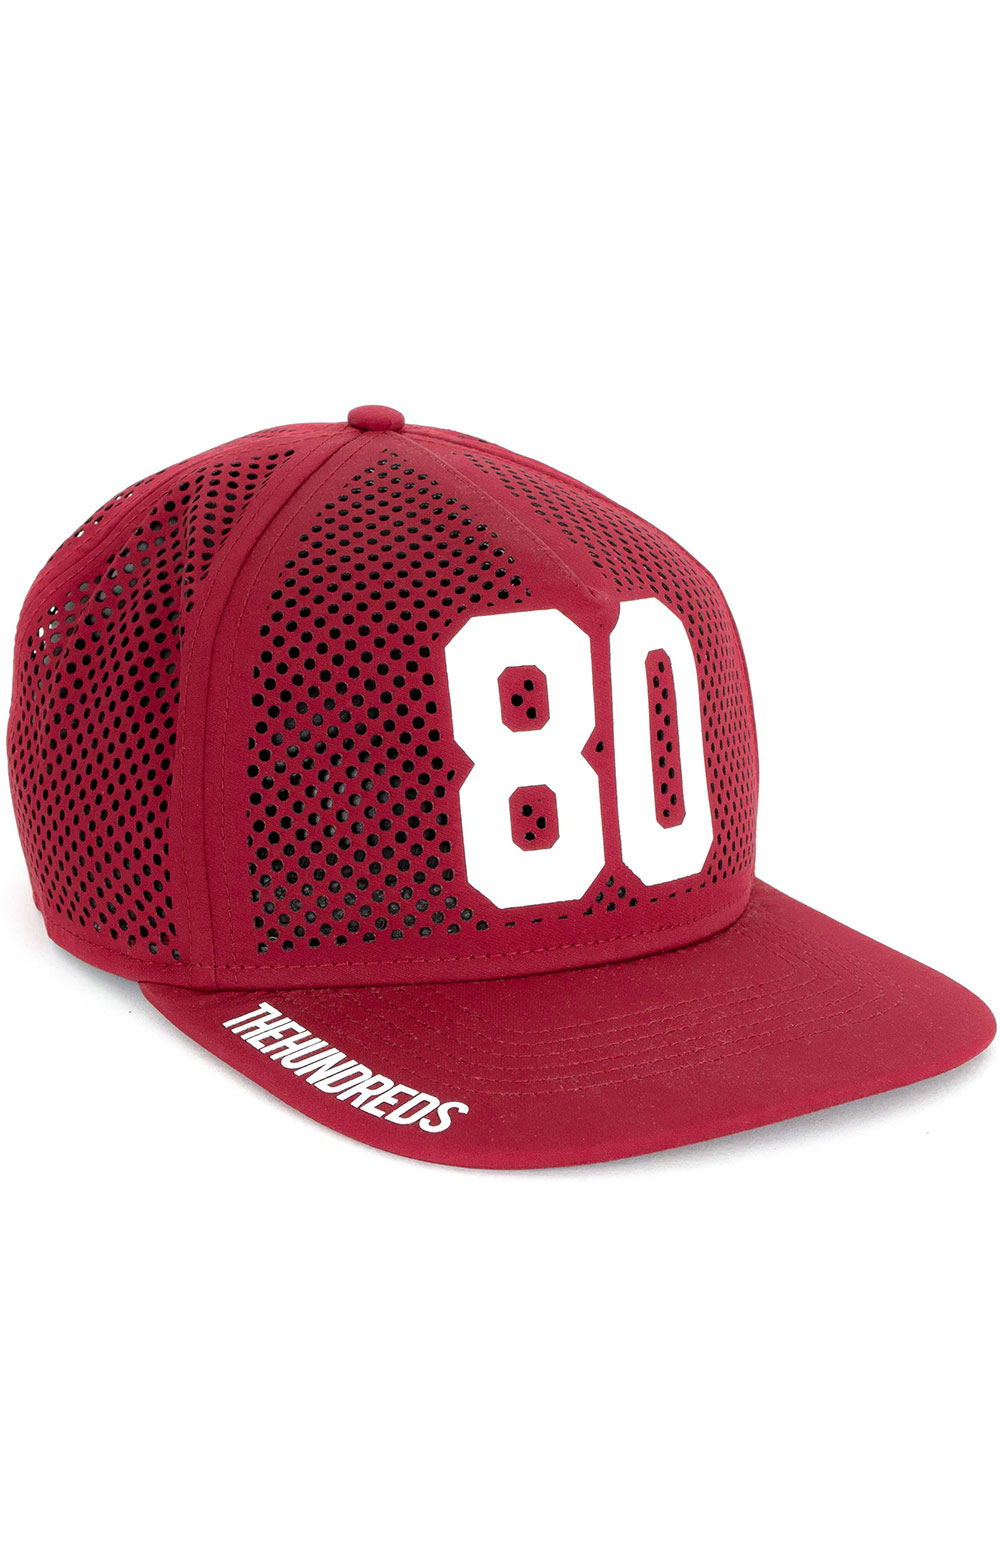 Pine Snap-Back Hat - Red